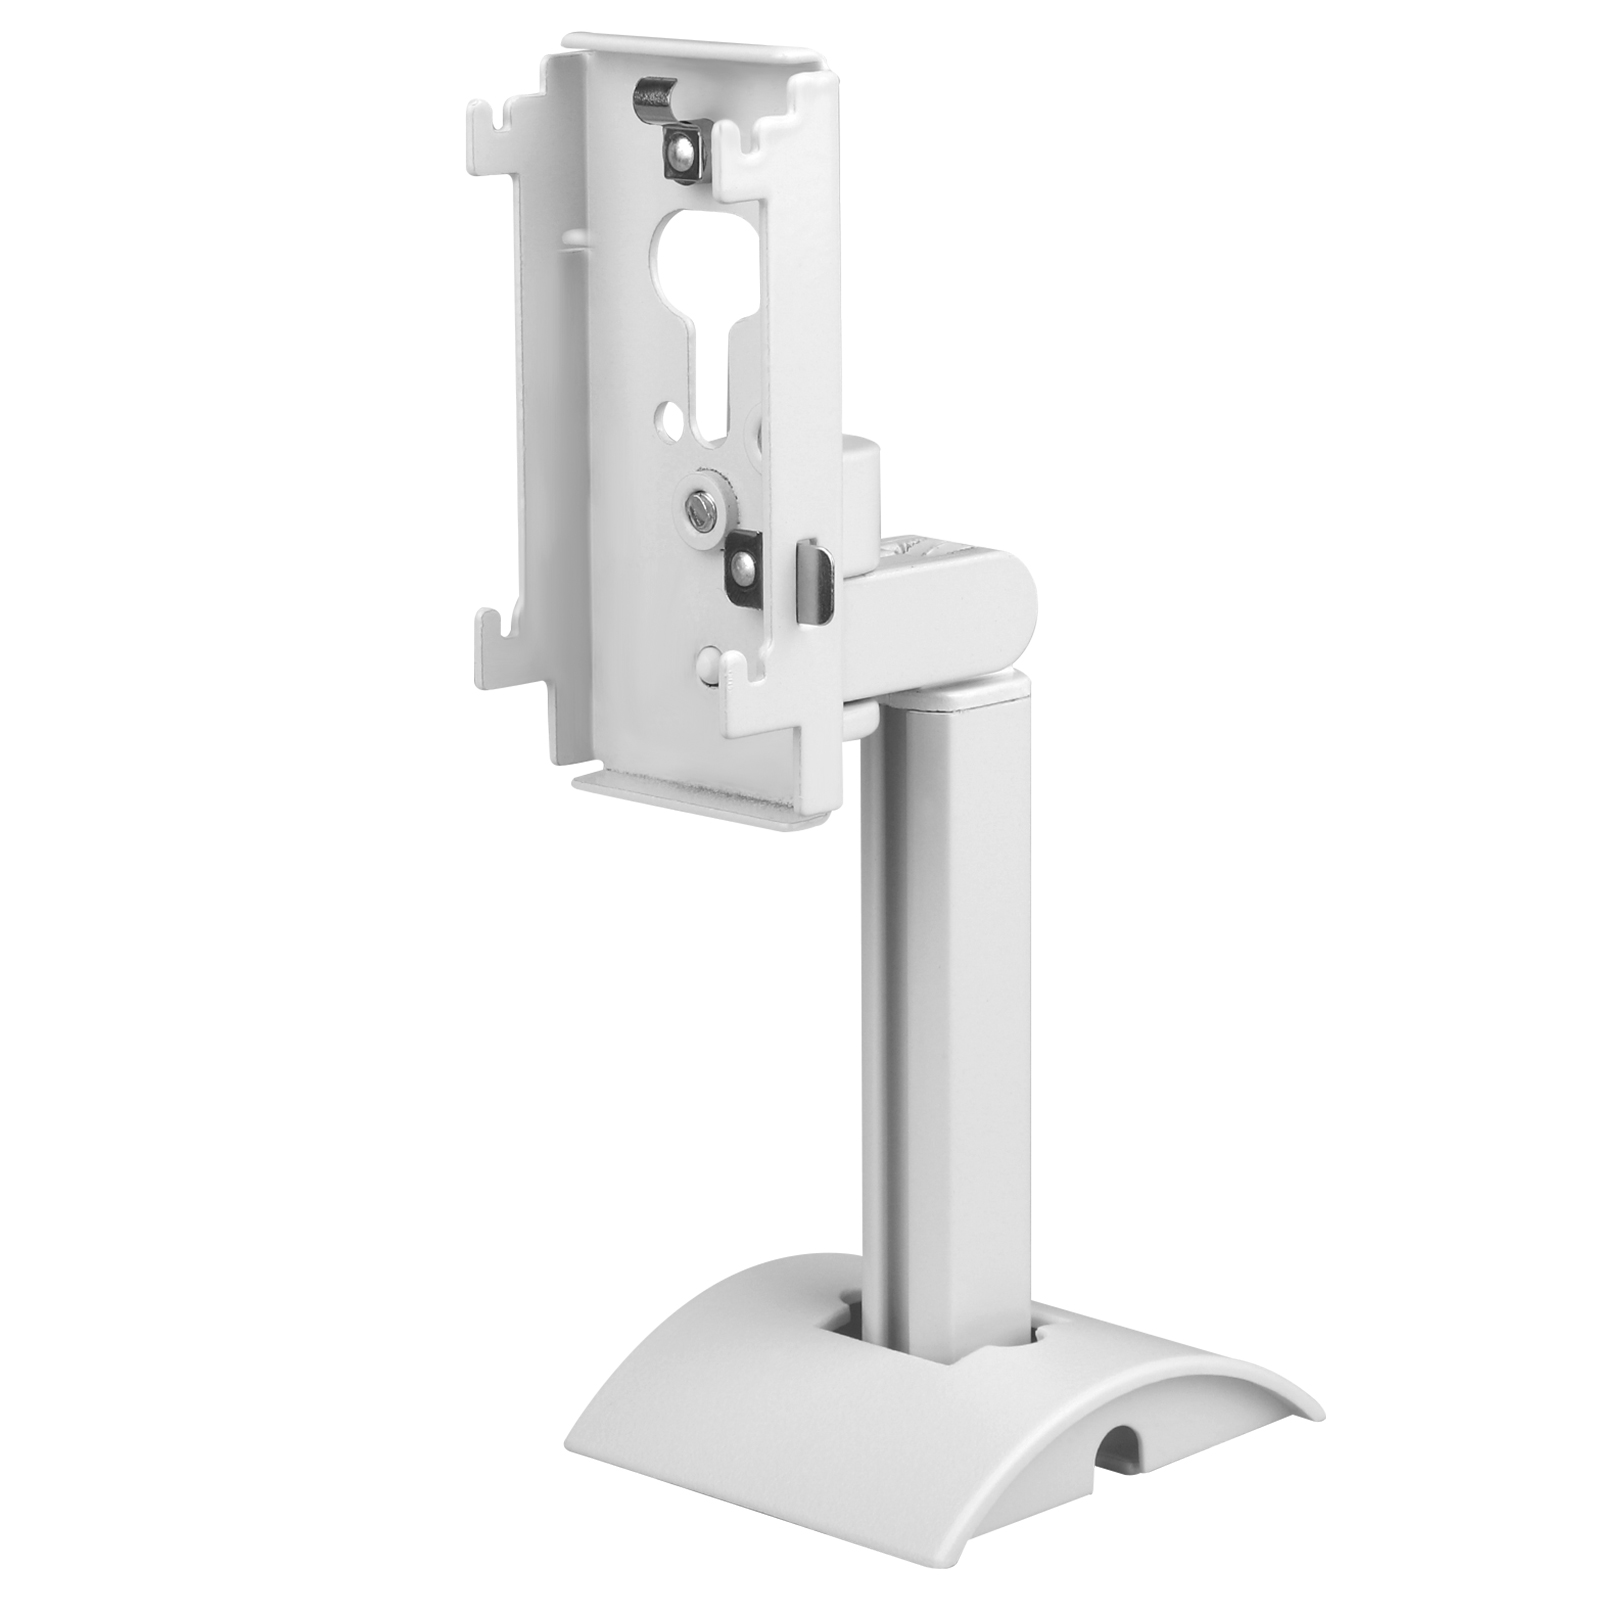 UB20-SERIES2-II-Wall-Ceiling-Bracket-Mount-for-Bose-all-Lifestyle-CineMate-White